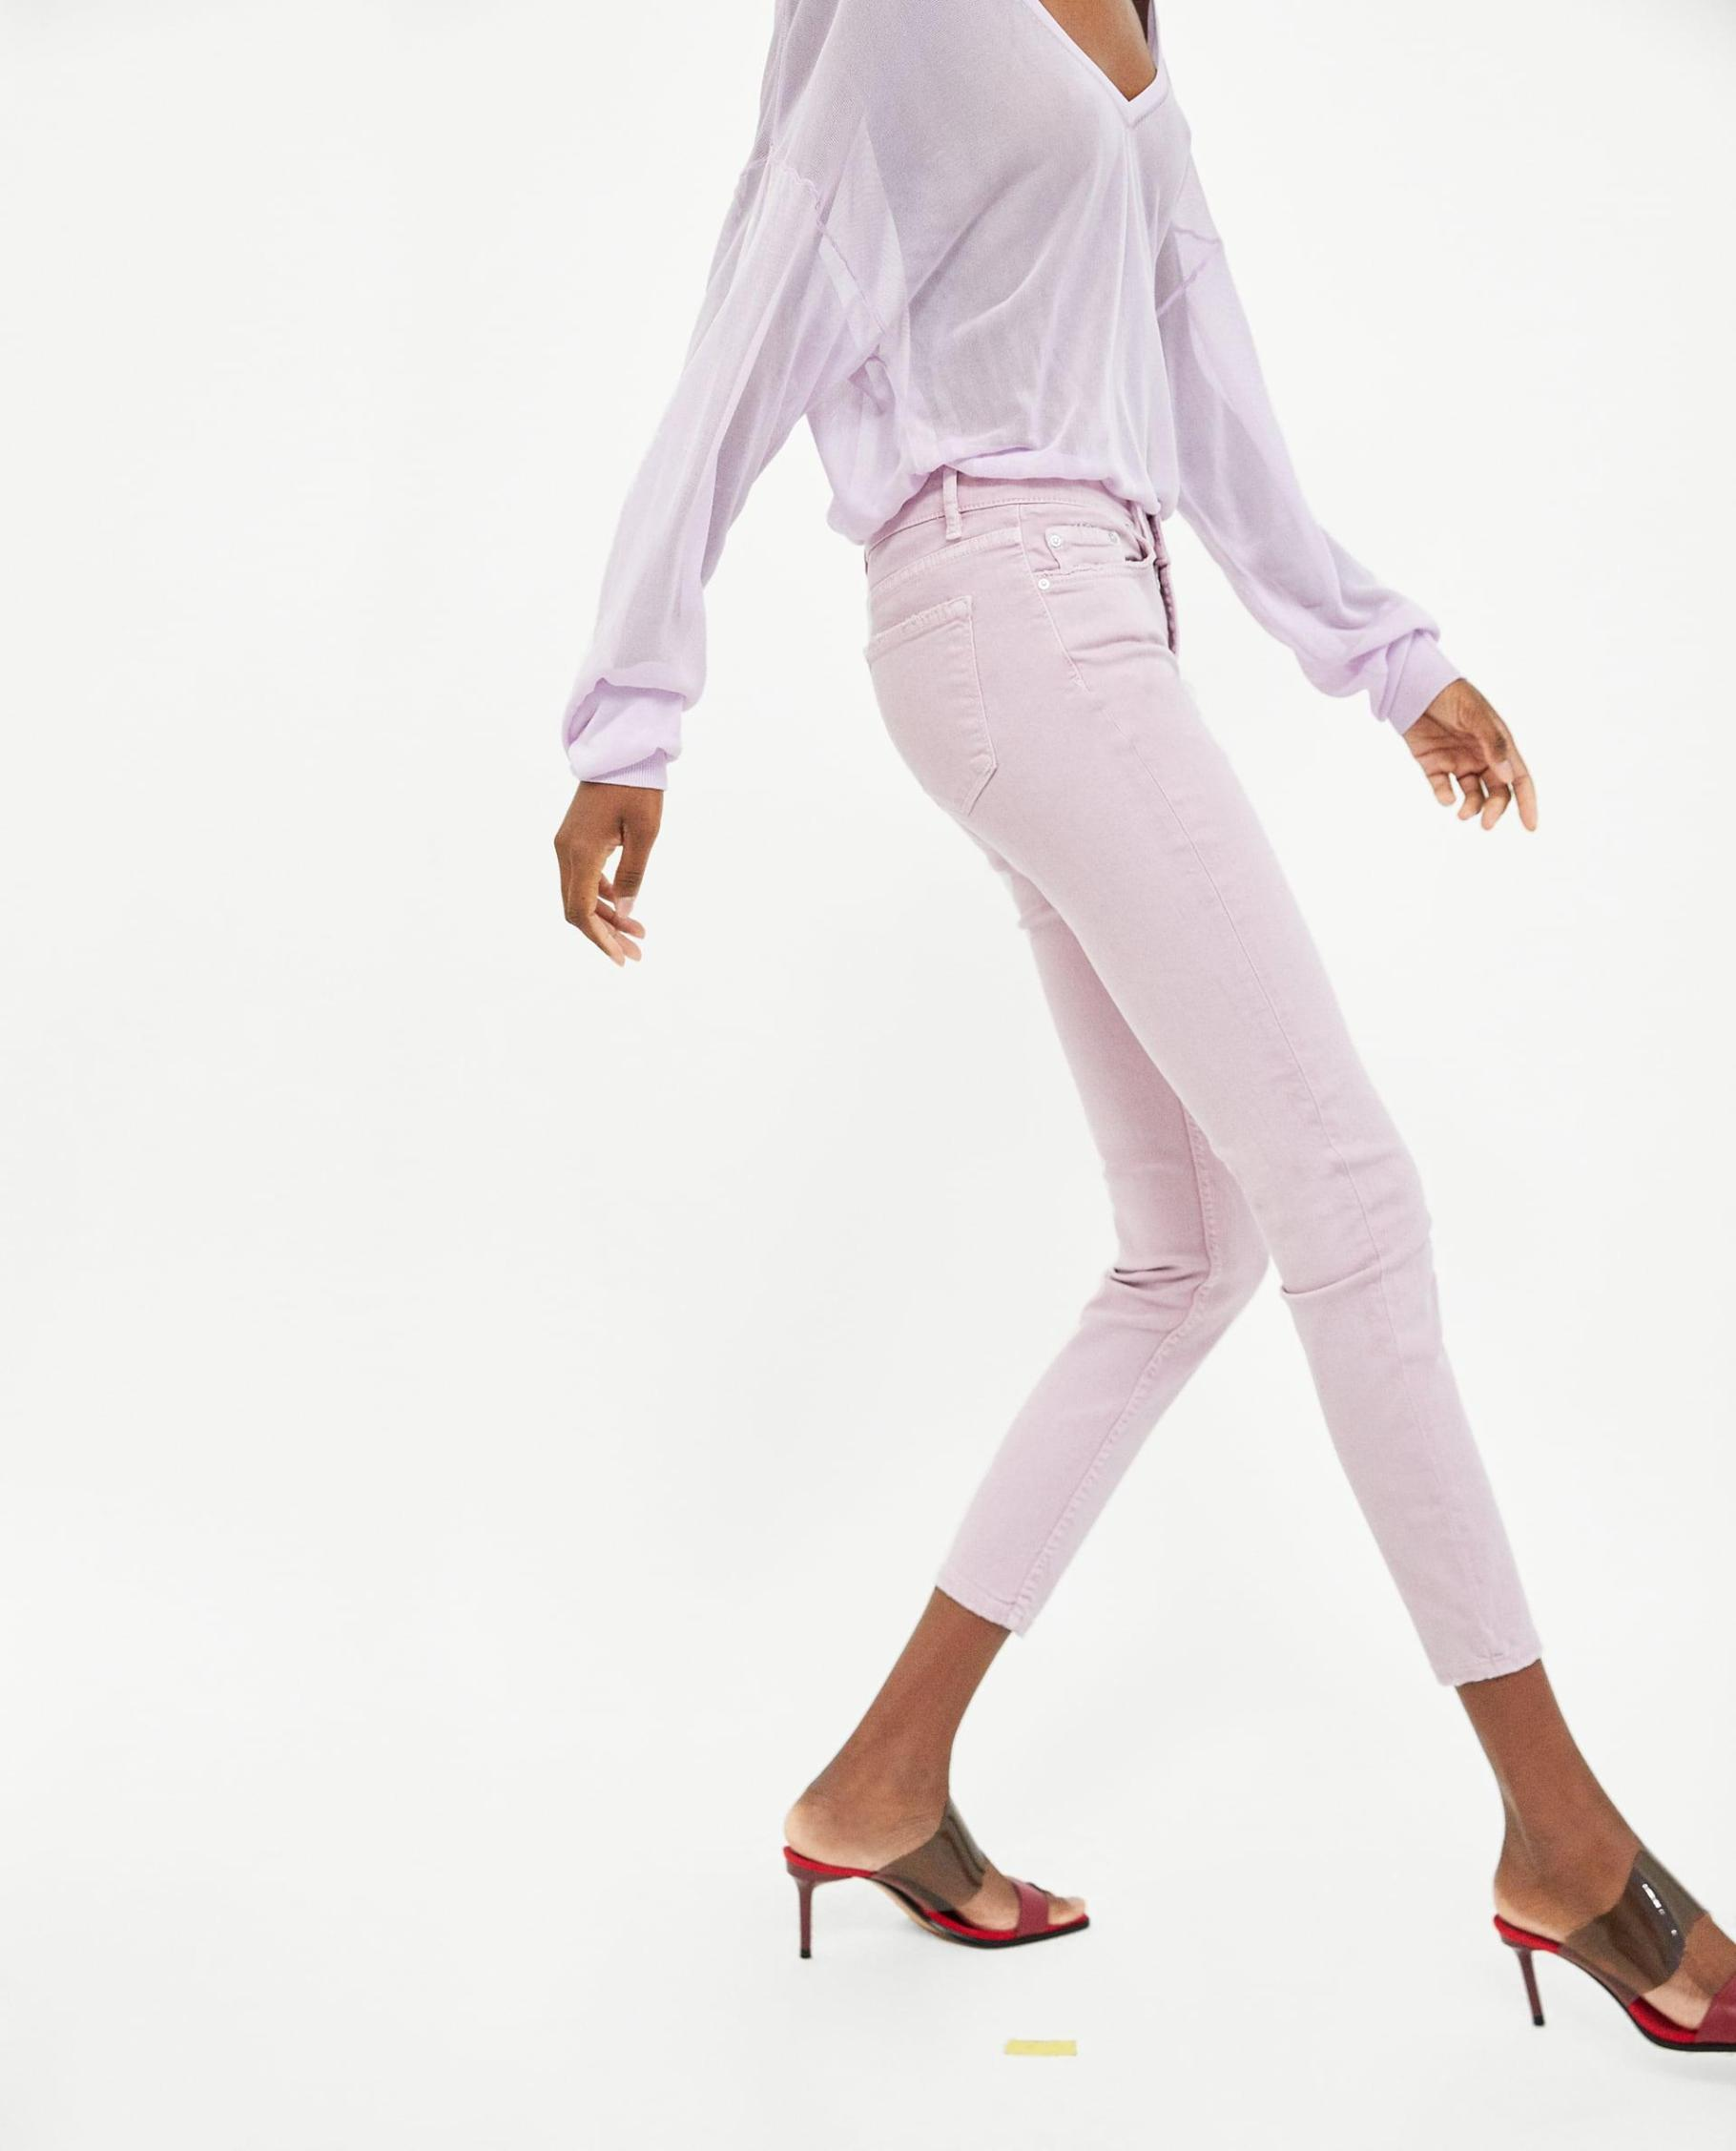 How to Wear Pastels 2019 Updated |Lilac Skinny Jeans and Lilac Shirt Tonal Monochrome| www.kittyandb.com #Lilac #Pastel #Chic #colourInspiration #OutfitInspiration #ColourPairing #monochrome